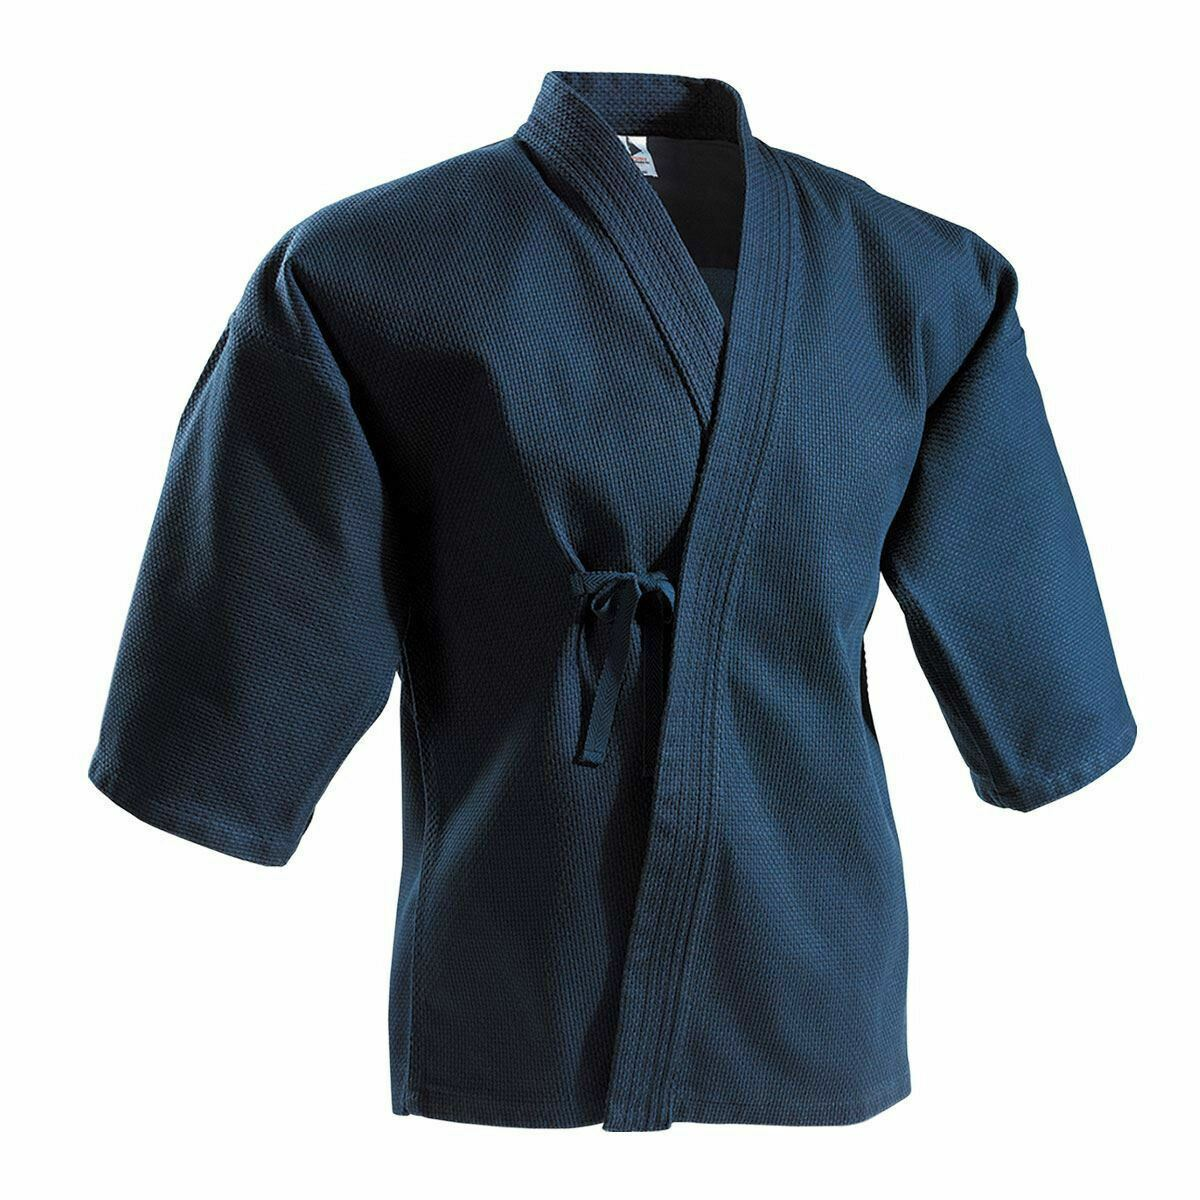 15 oz Single Layer  Keikogi c0221  find your favorite here